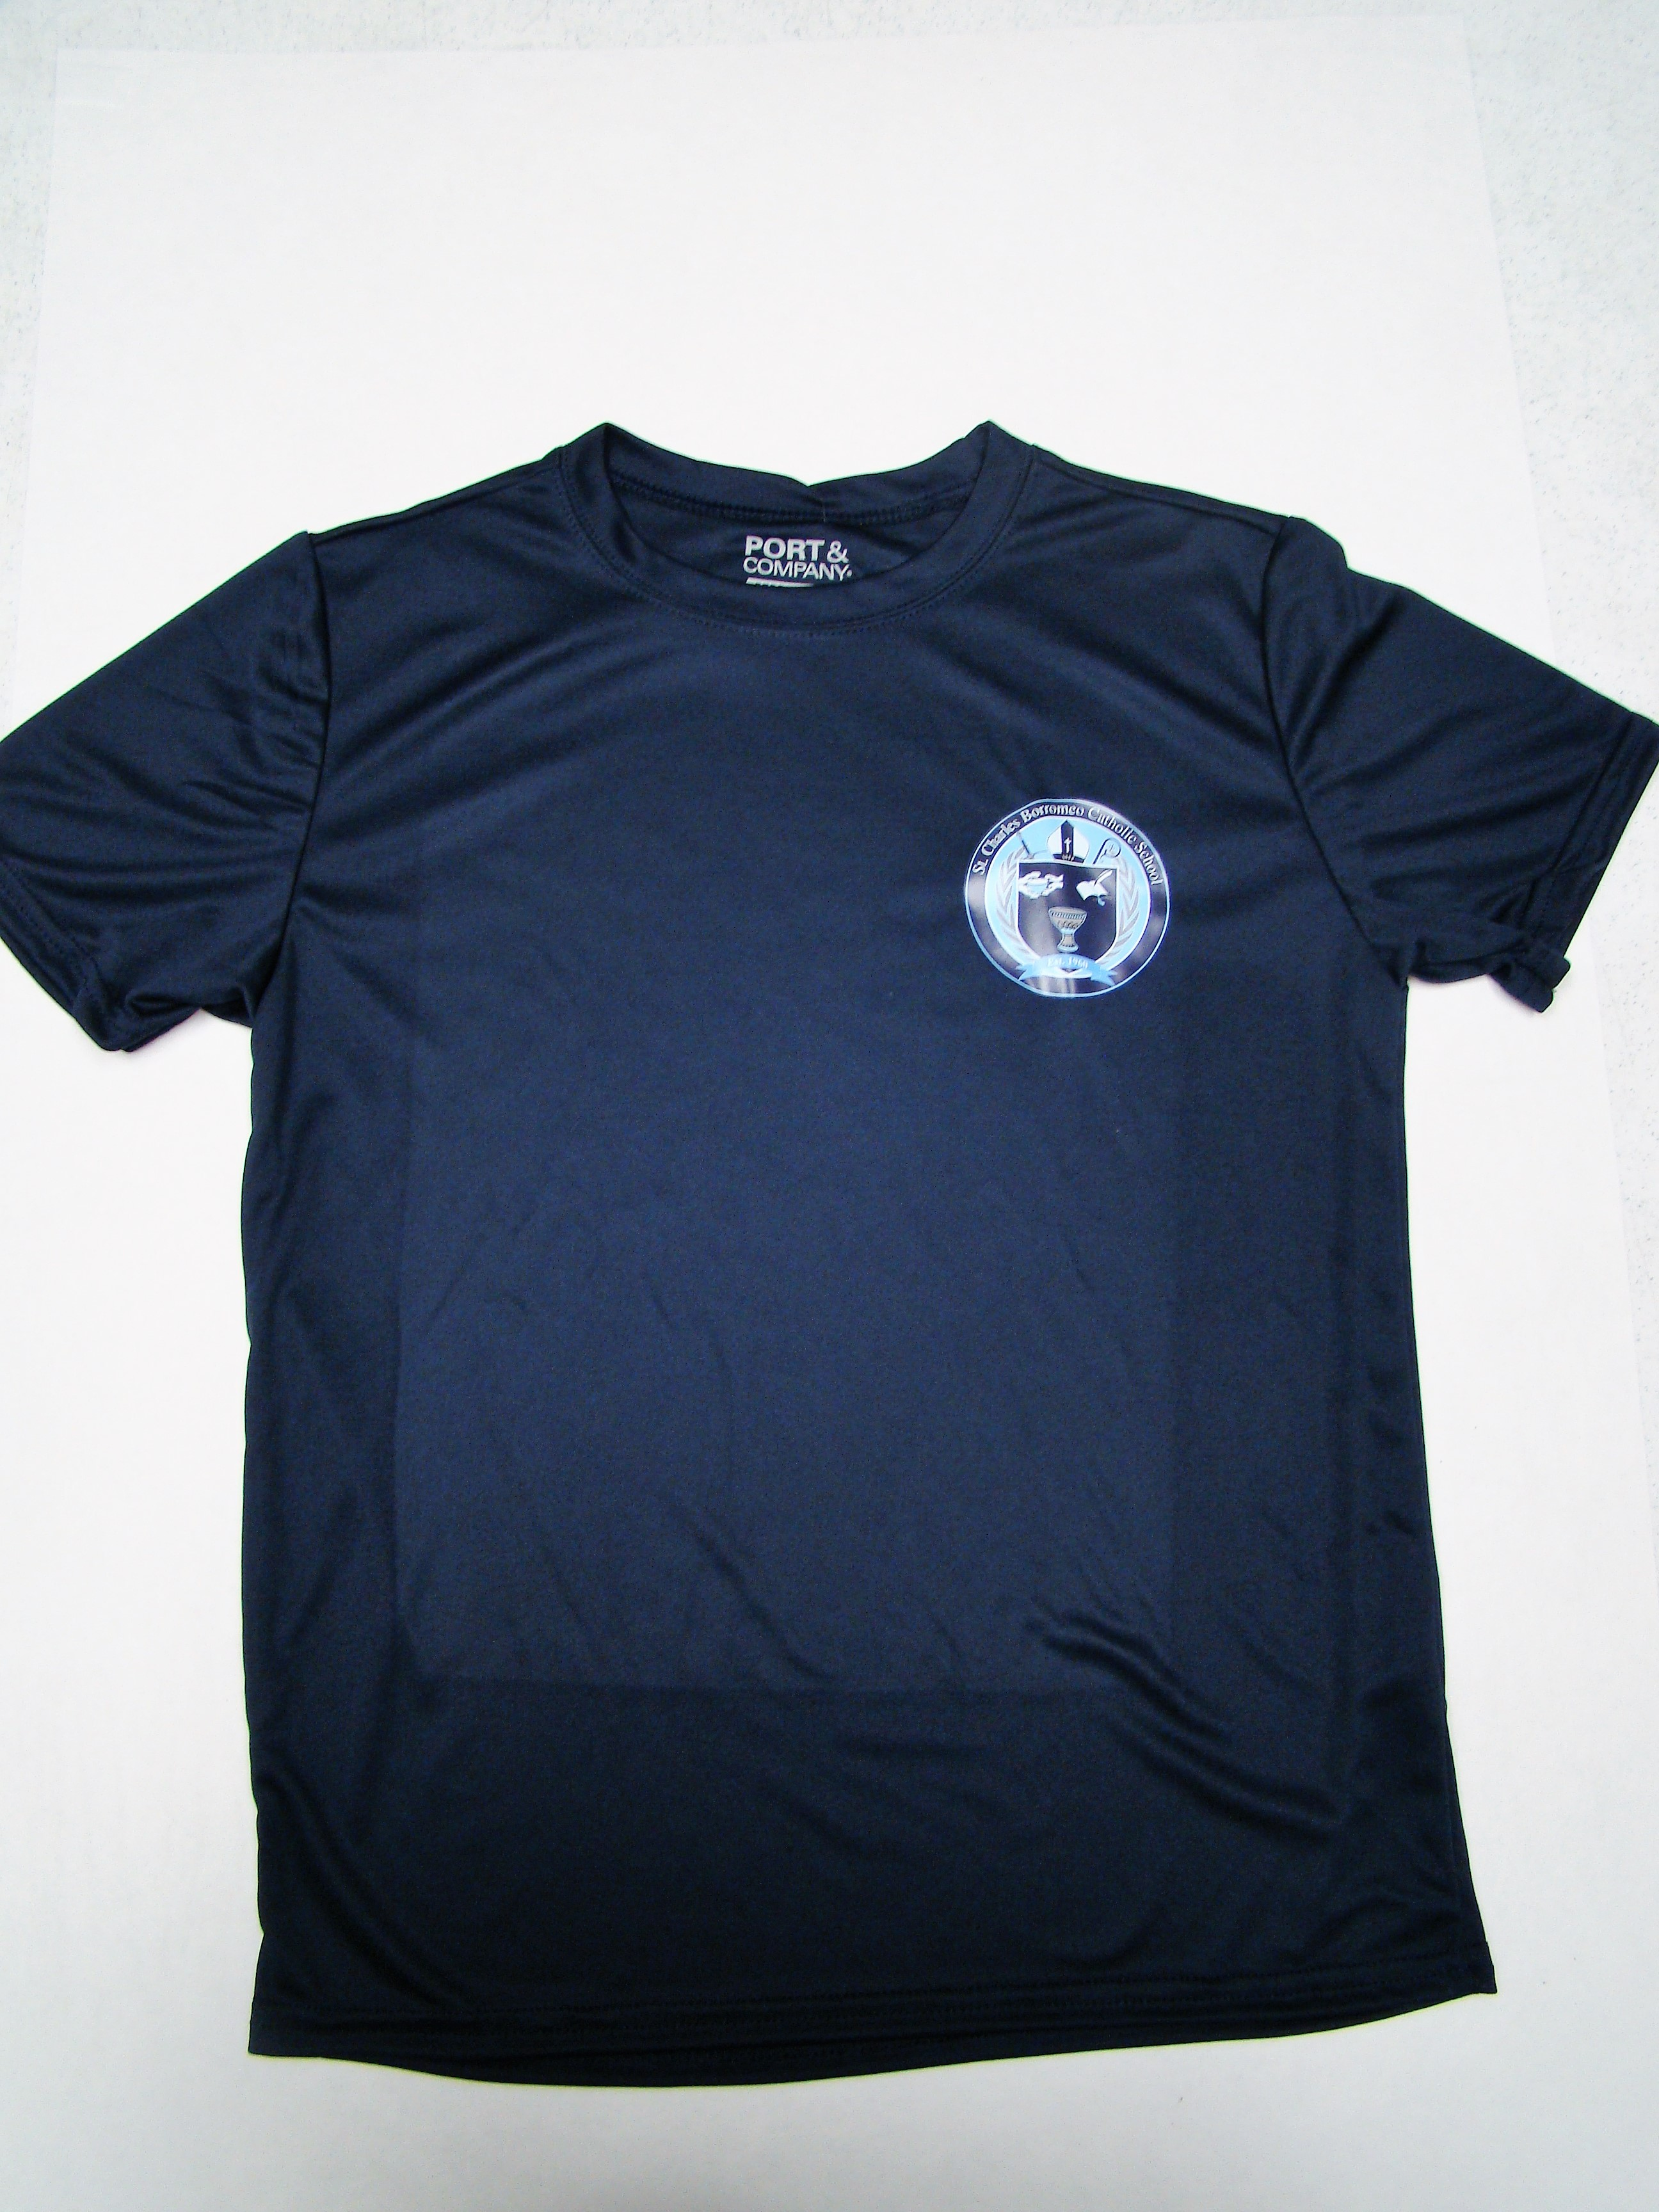 St Charles Dri Fit PE Shirt